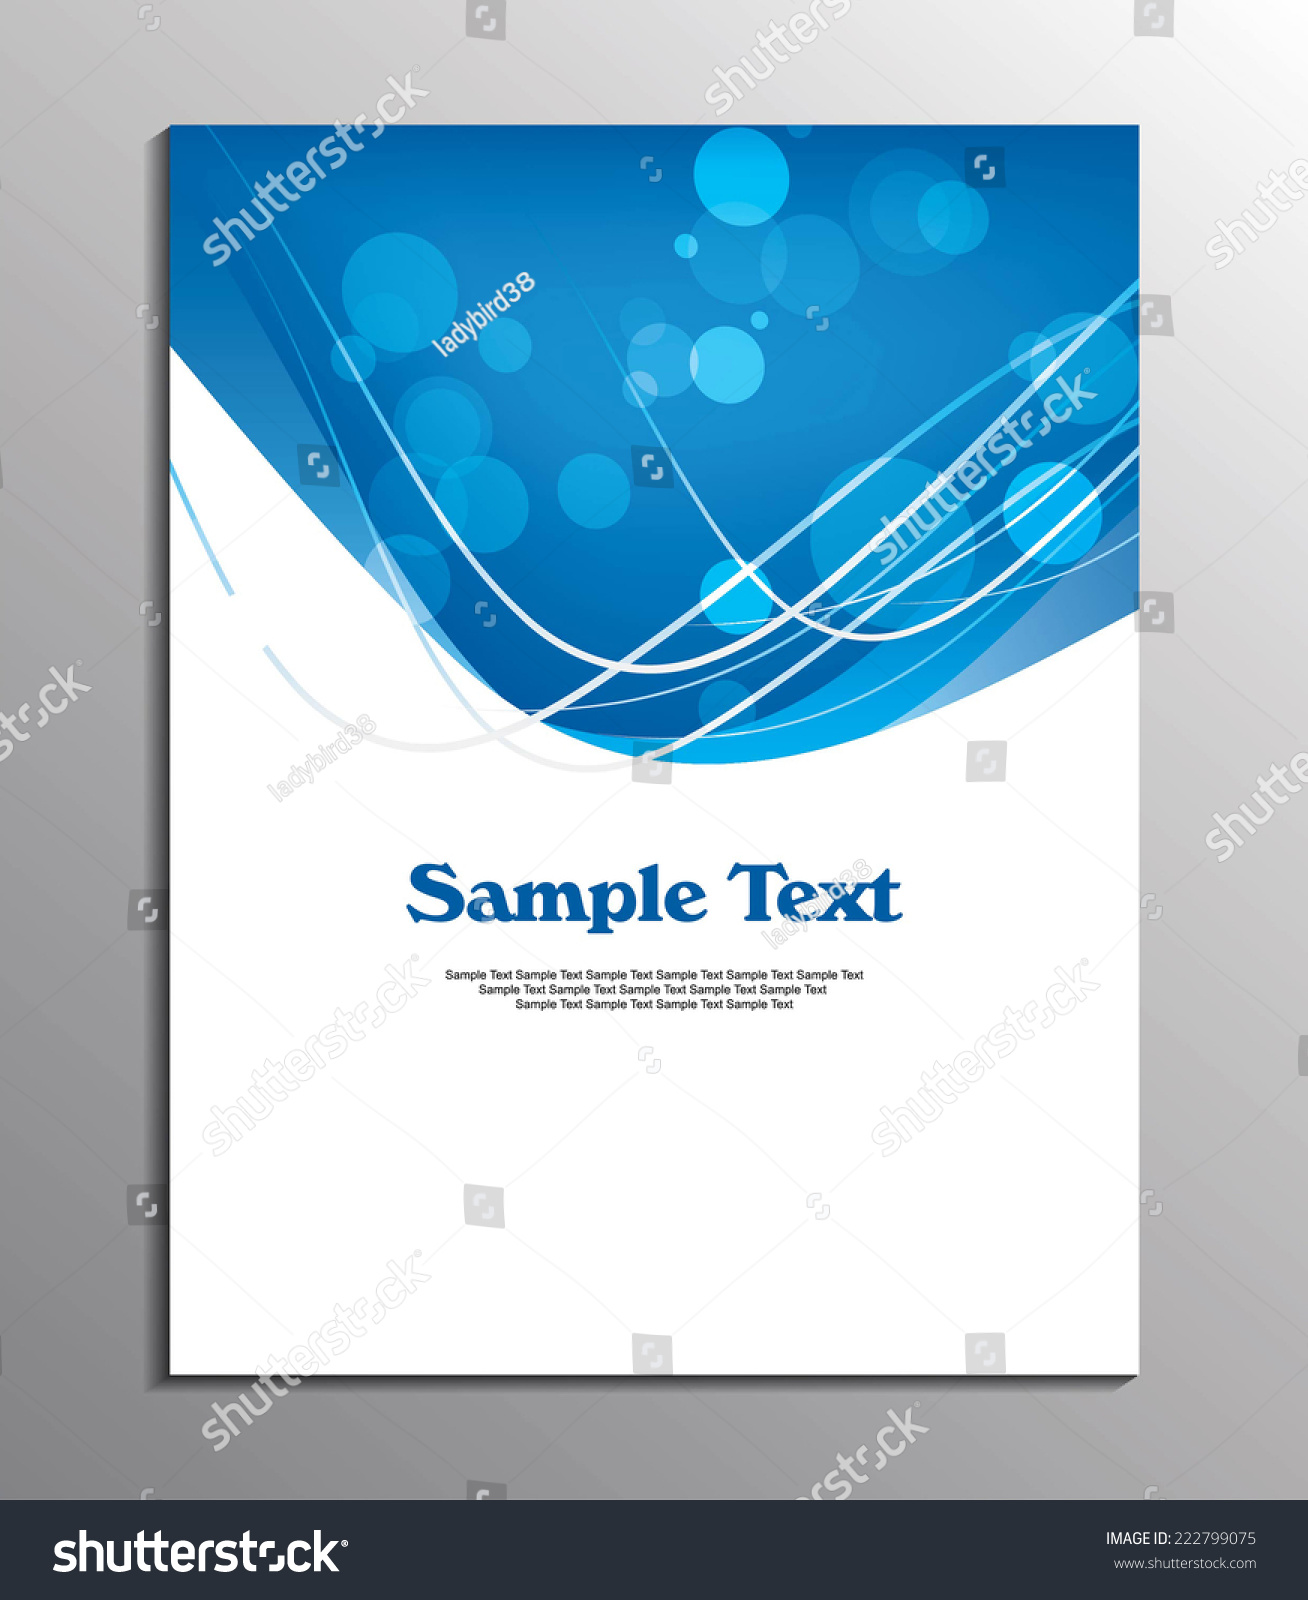 cover design flyer design professional business stock vector cover design or flyer design professional business flyer template or corporate banner design can